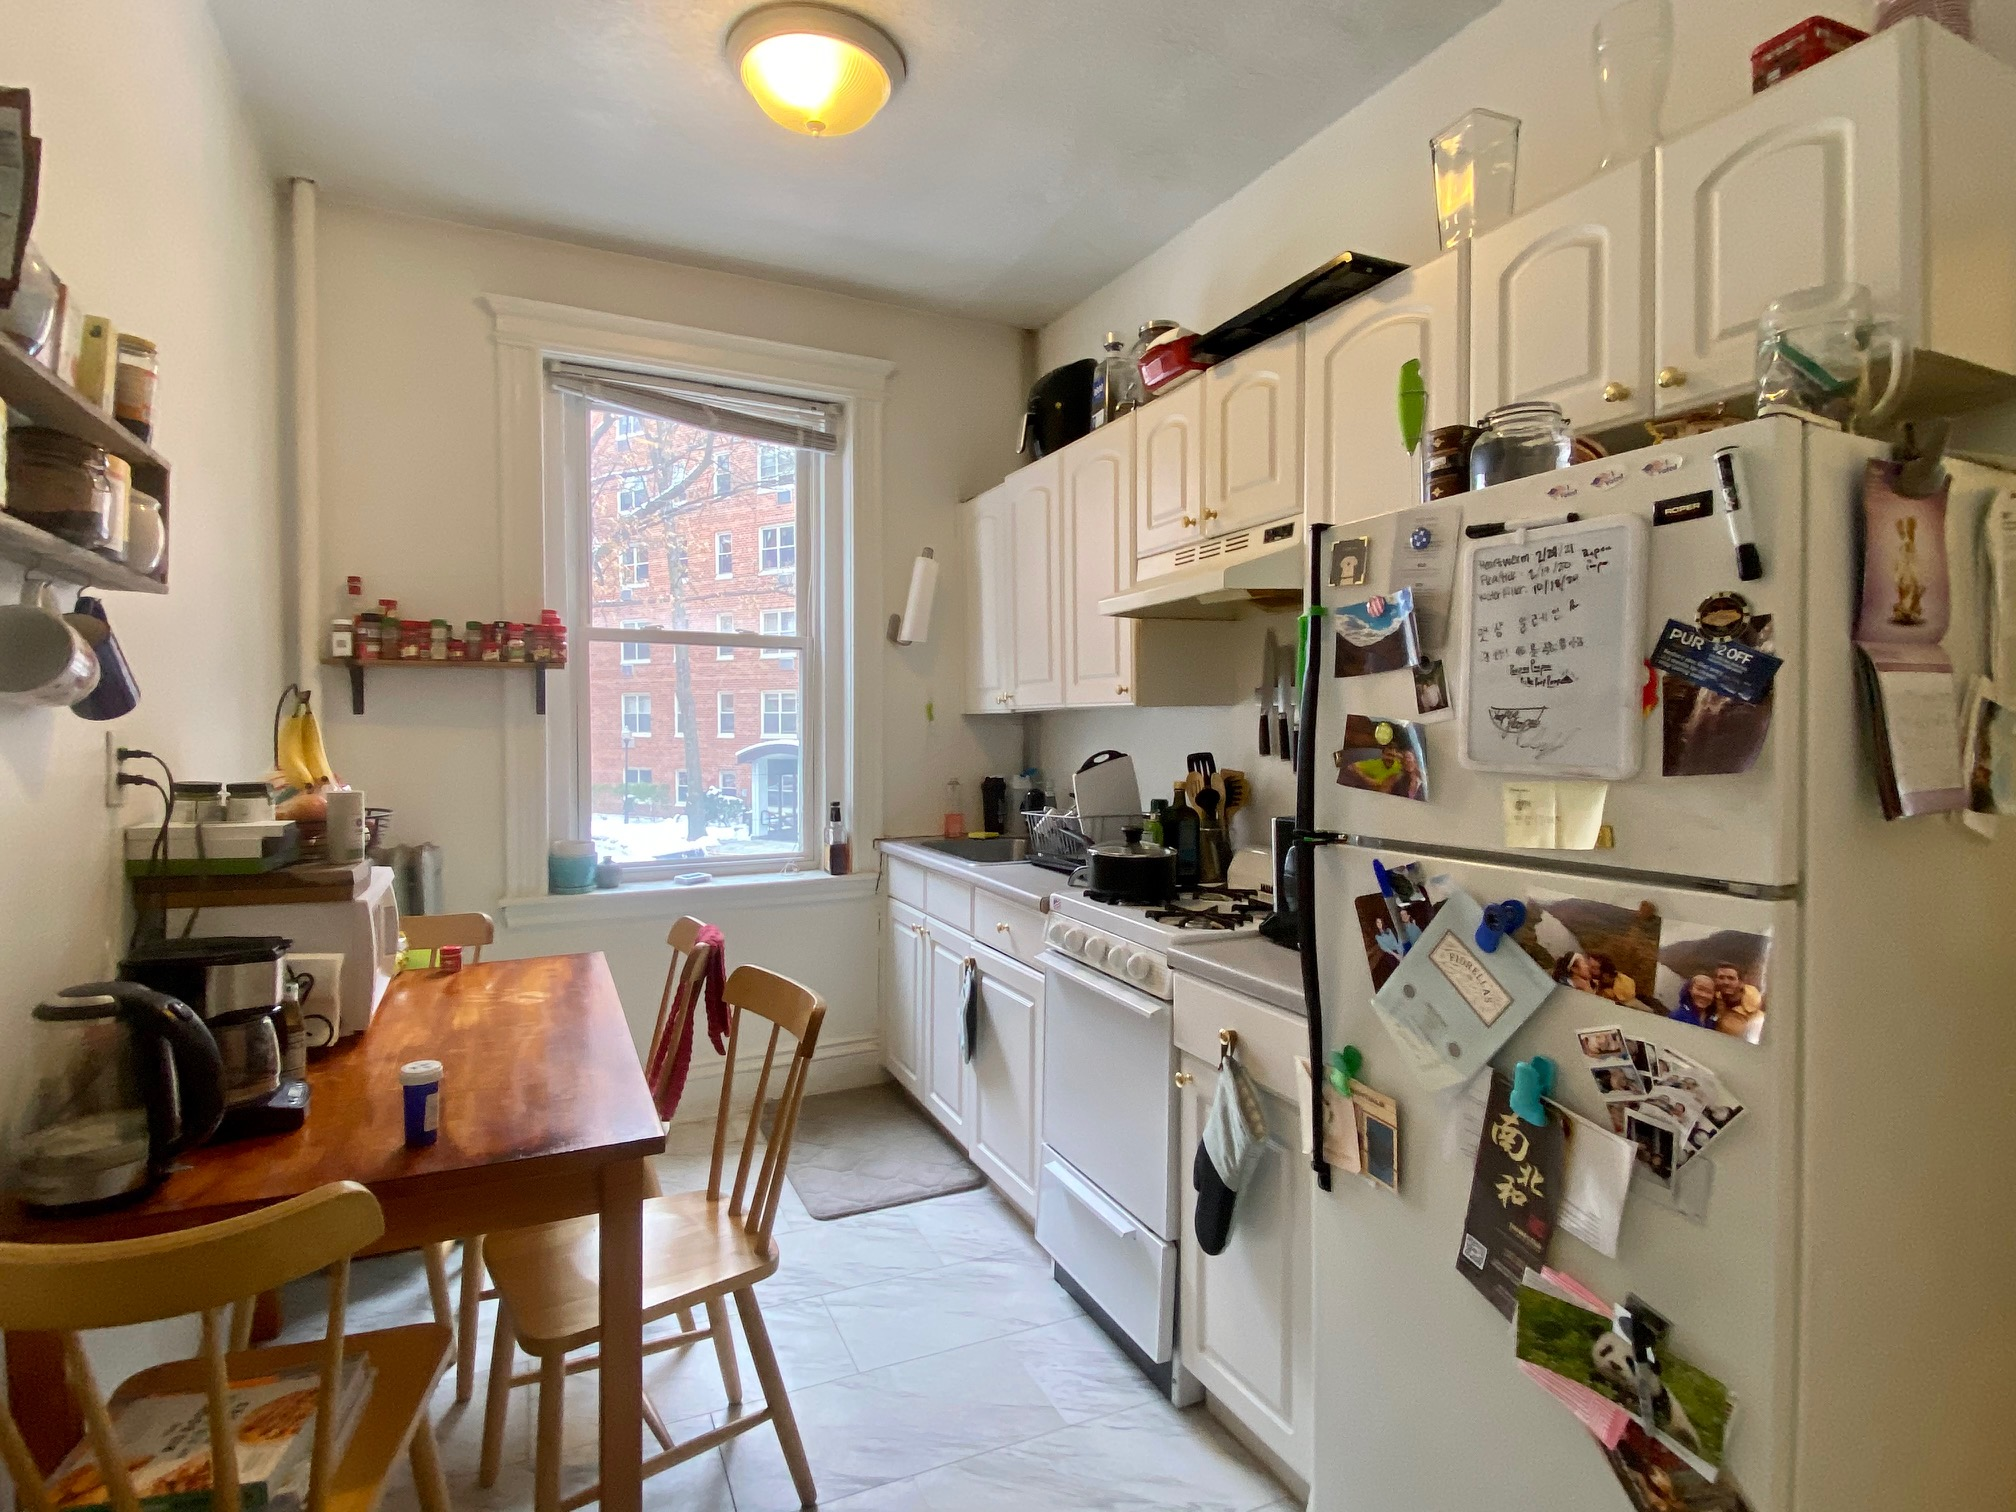 Pictures of  property for rent on Camelot Ct., Boston, MA 02135